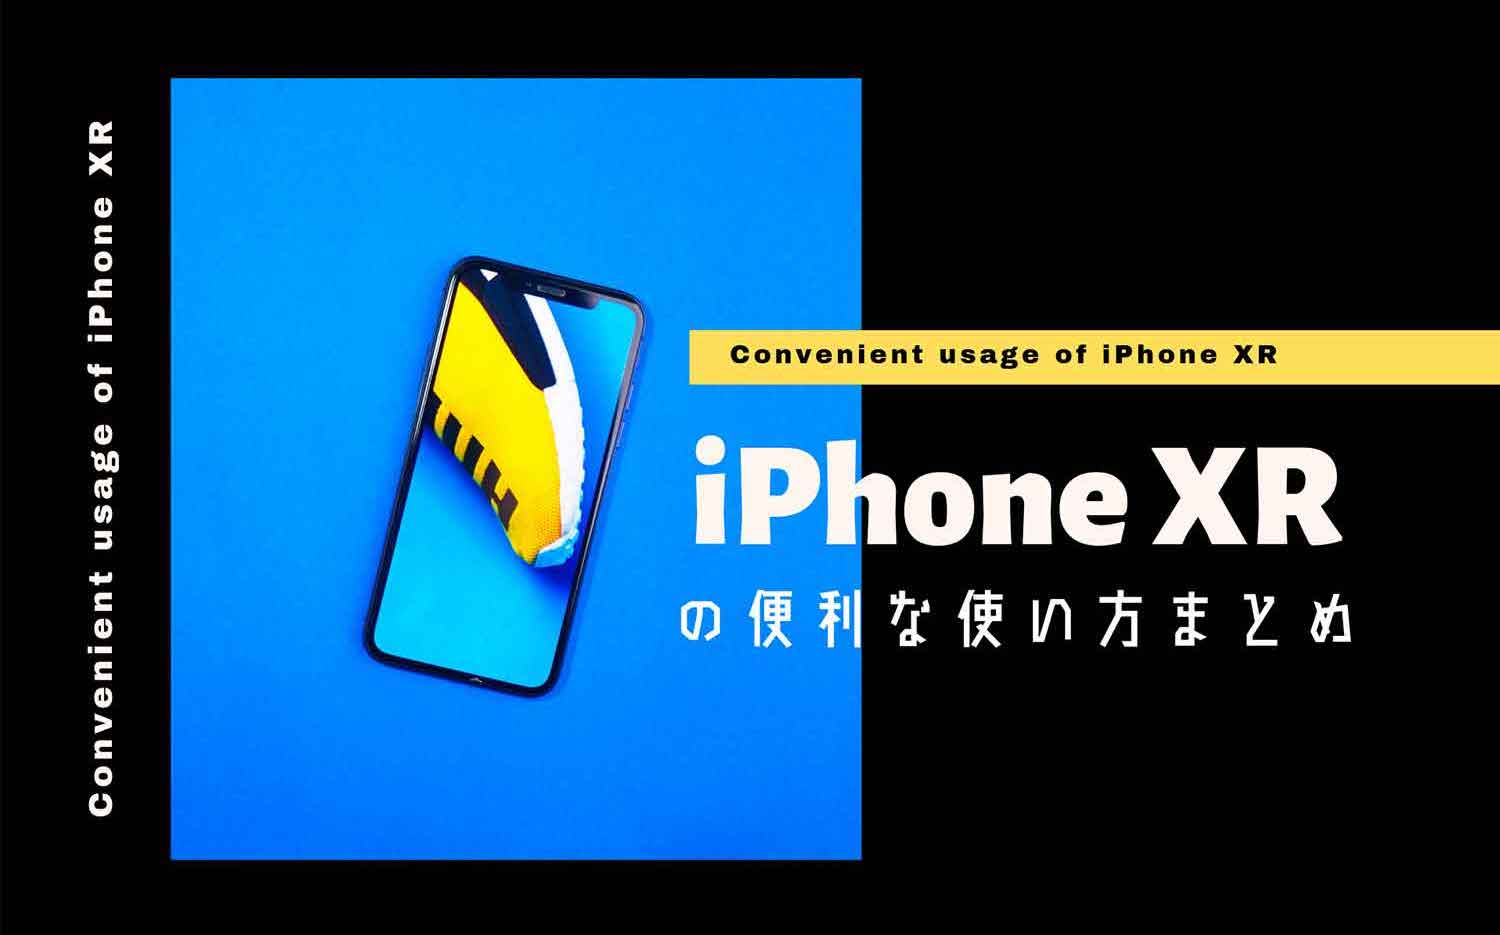 Convenient-usage-of-iPhone-XR